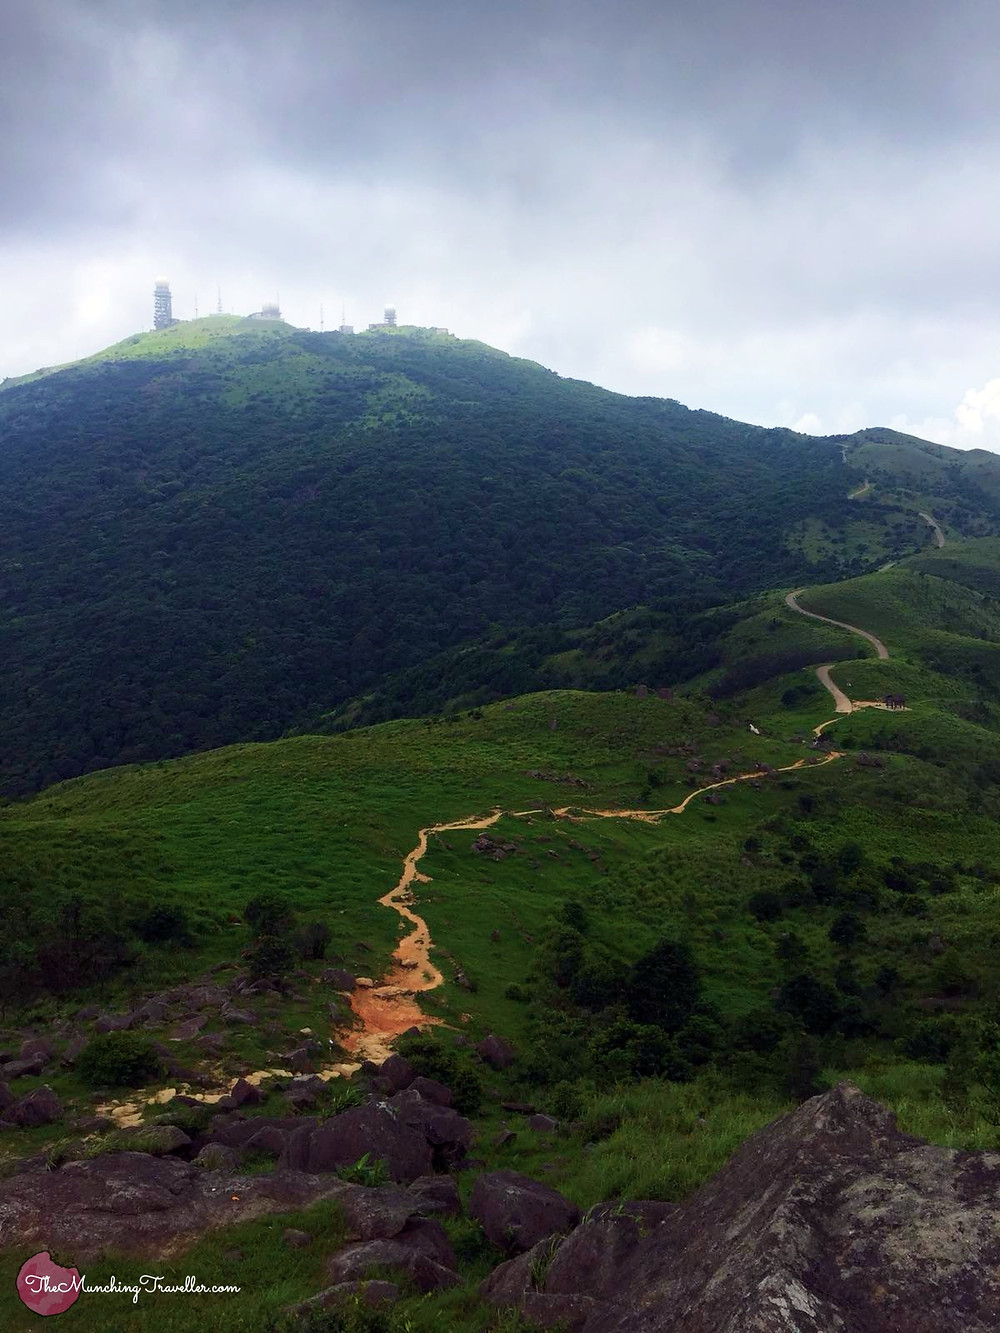 Hiking up Tai Mo Shan